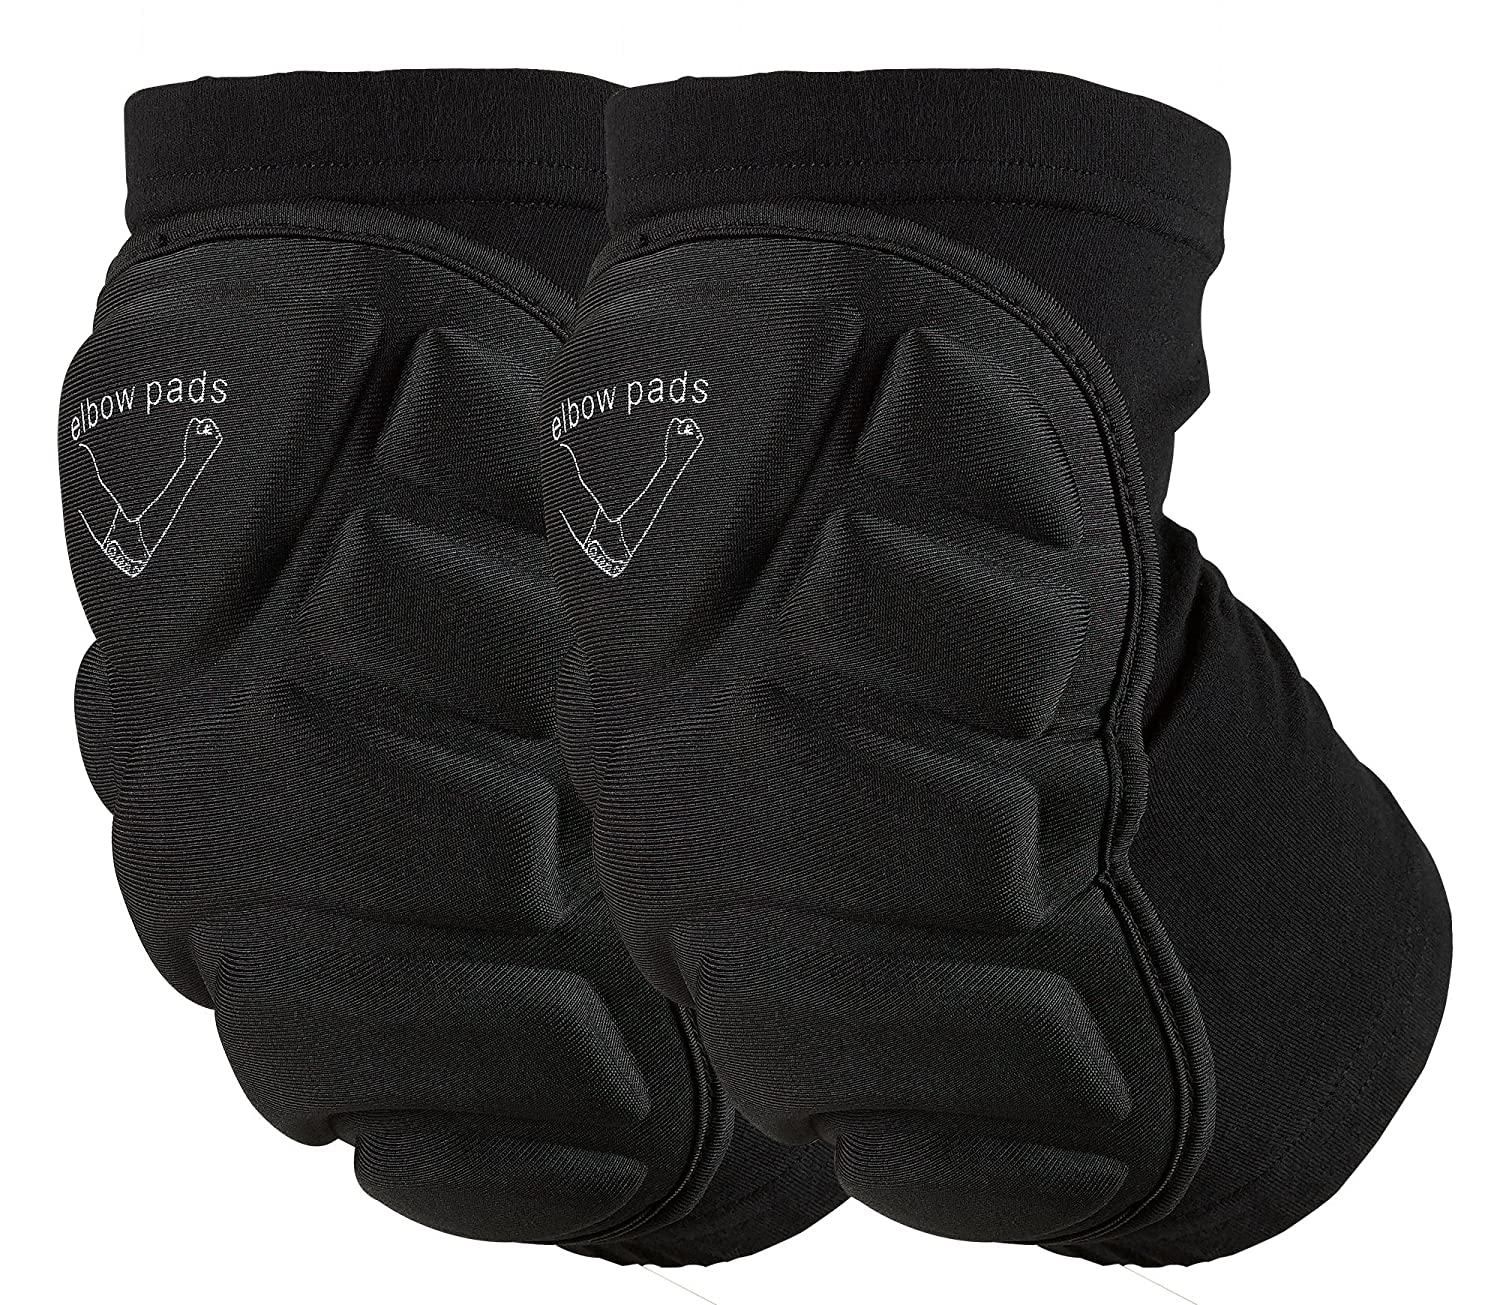 OMID Elbow Pads - Breathable Lightweight Padded Elbow Sleeve for Skiing, Skating, Skateboarding & Cycling